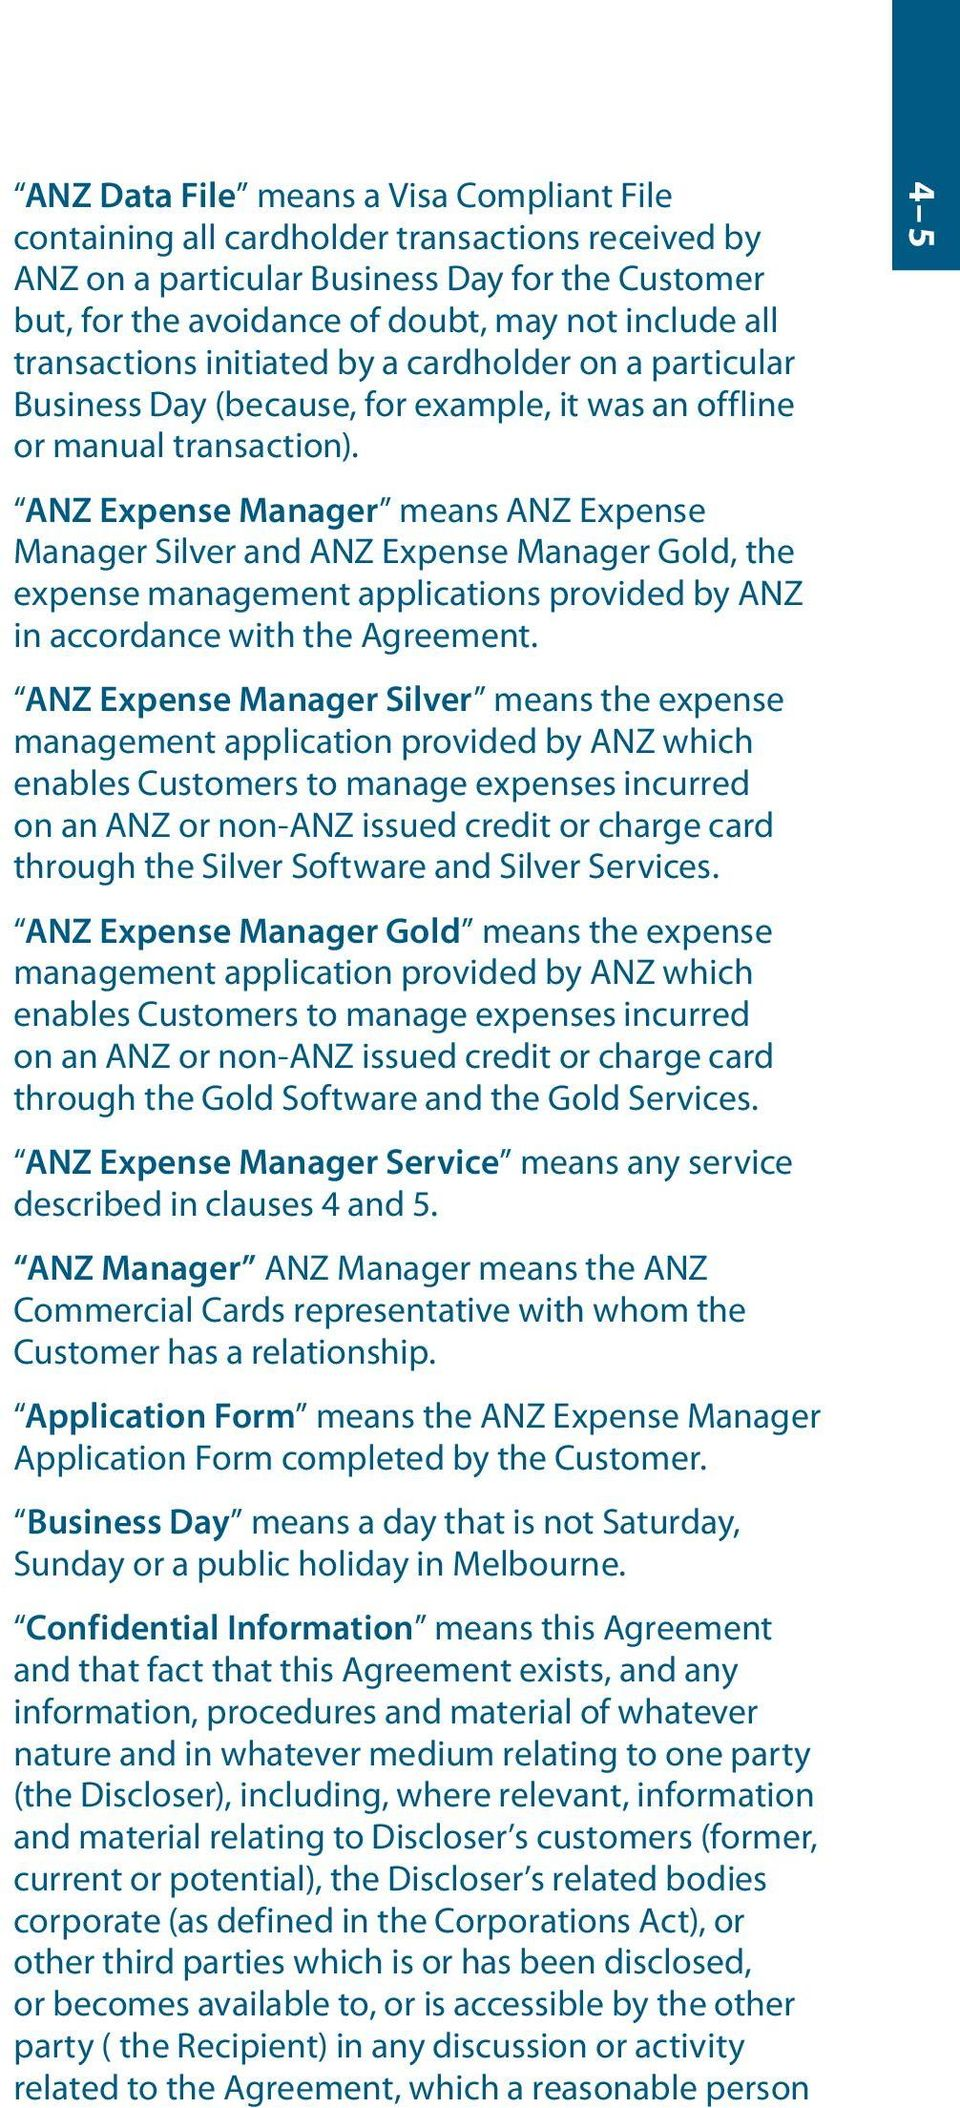 ANZ Expense Manager means ANZ Expense Manager Silver and ANZ Expense Manager Gold, the expense management applications provided by ANZ in accordance with the Agreement.